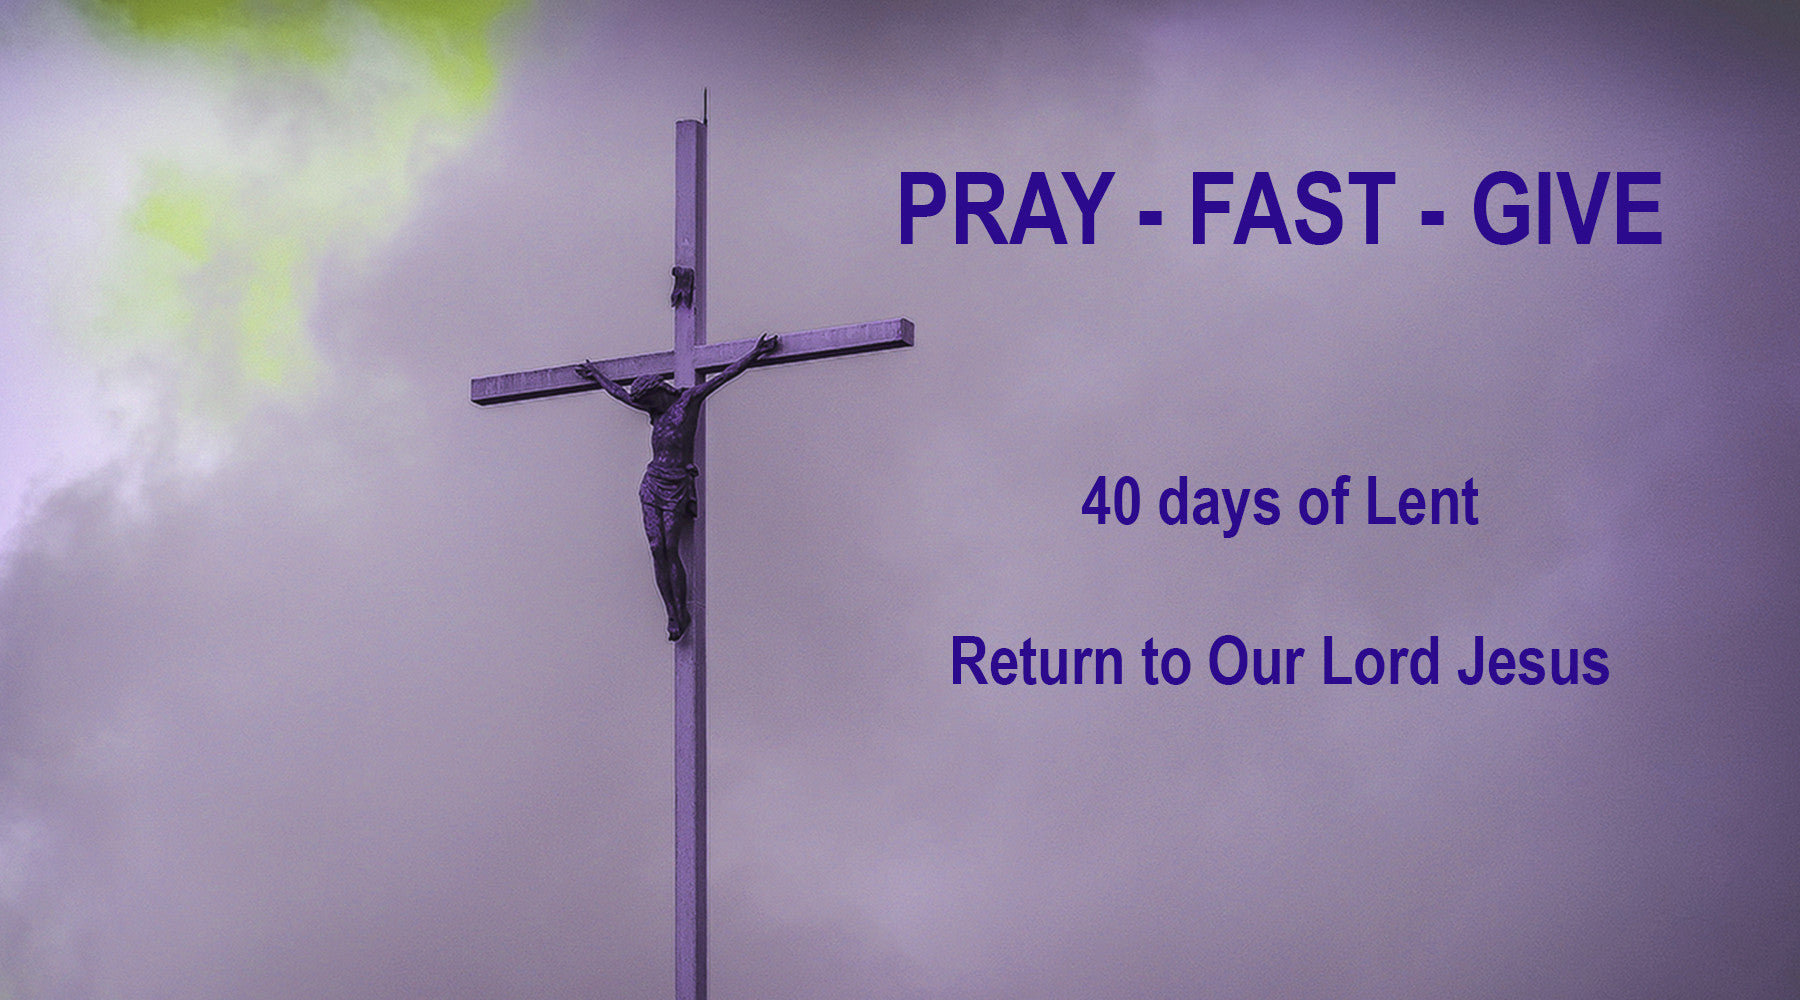 Today Starts the Season of Lent for 40 Days